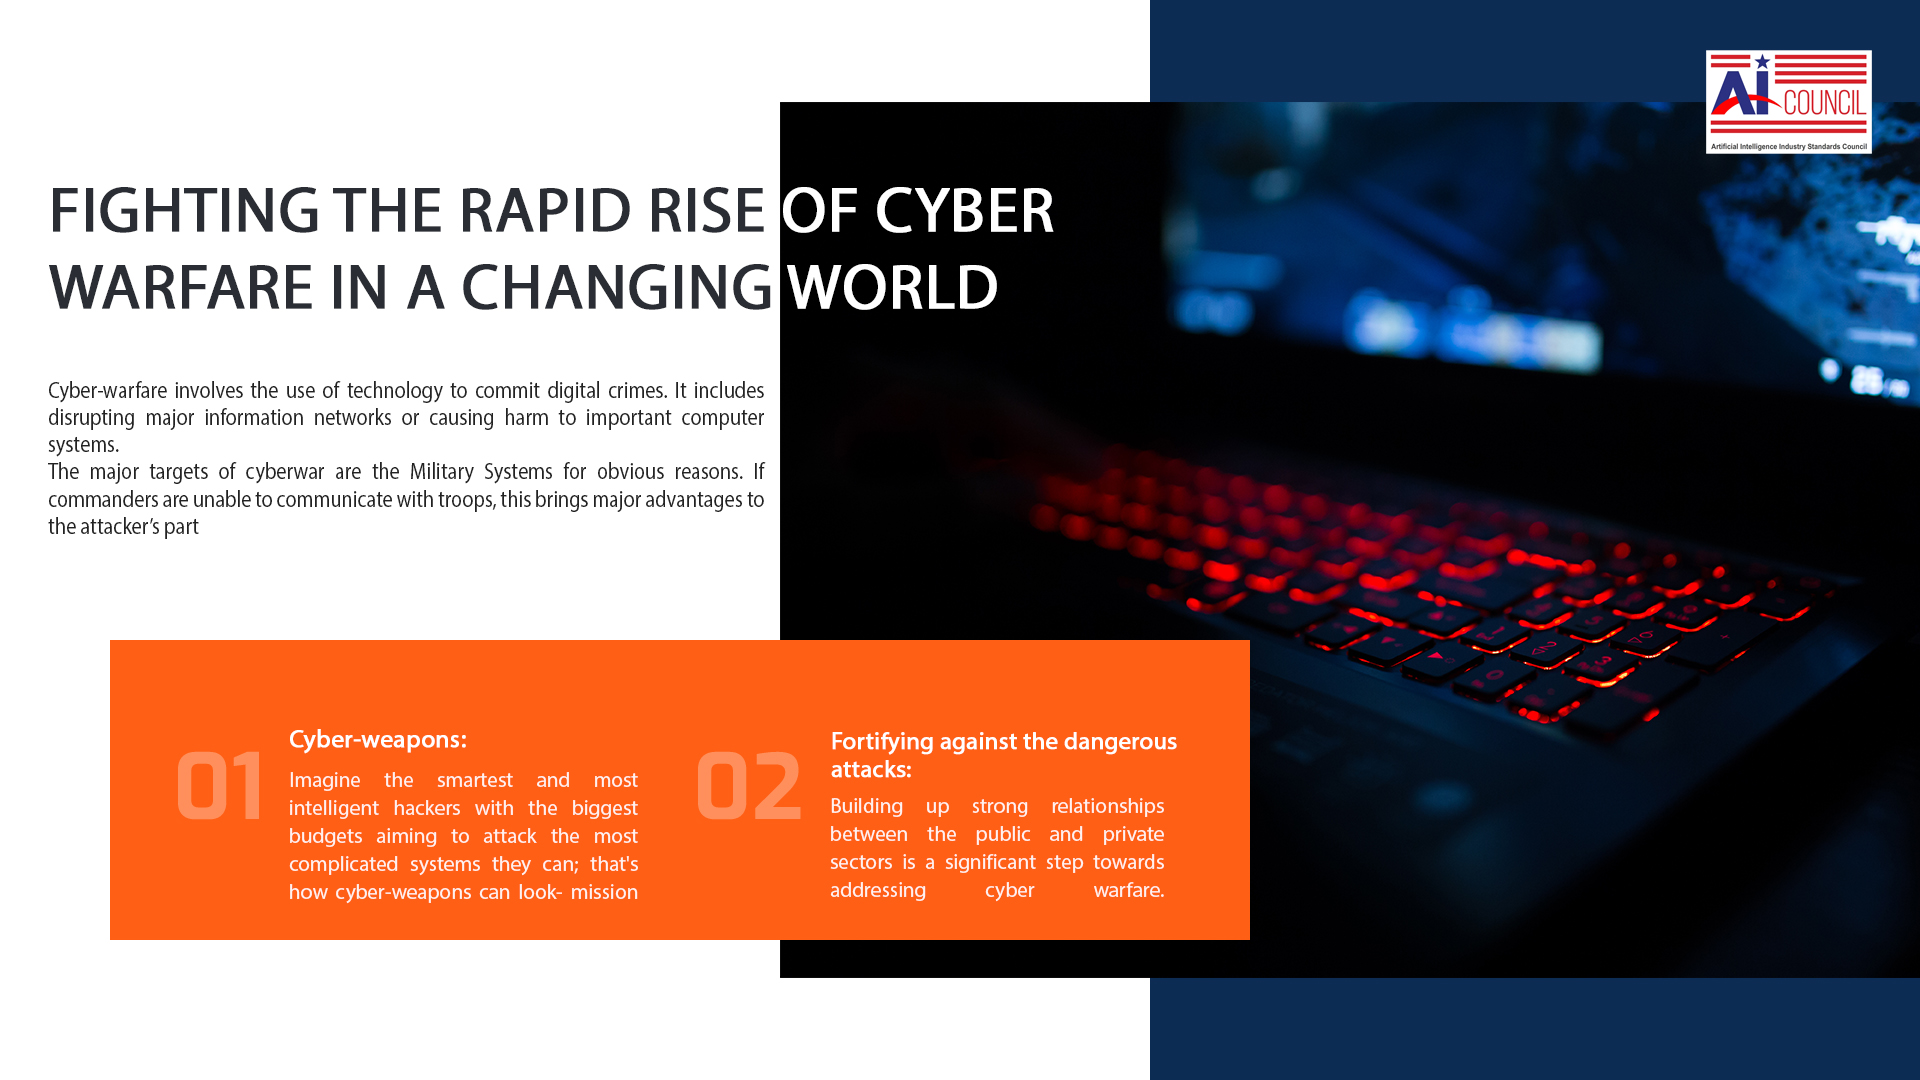 Fighting the Rapid Rise of Cyber Warfare in a Changing World